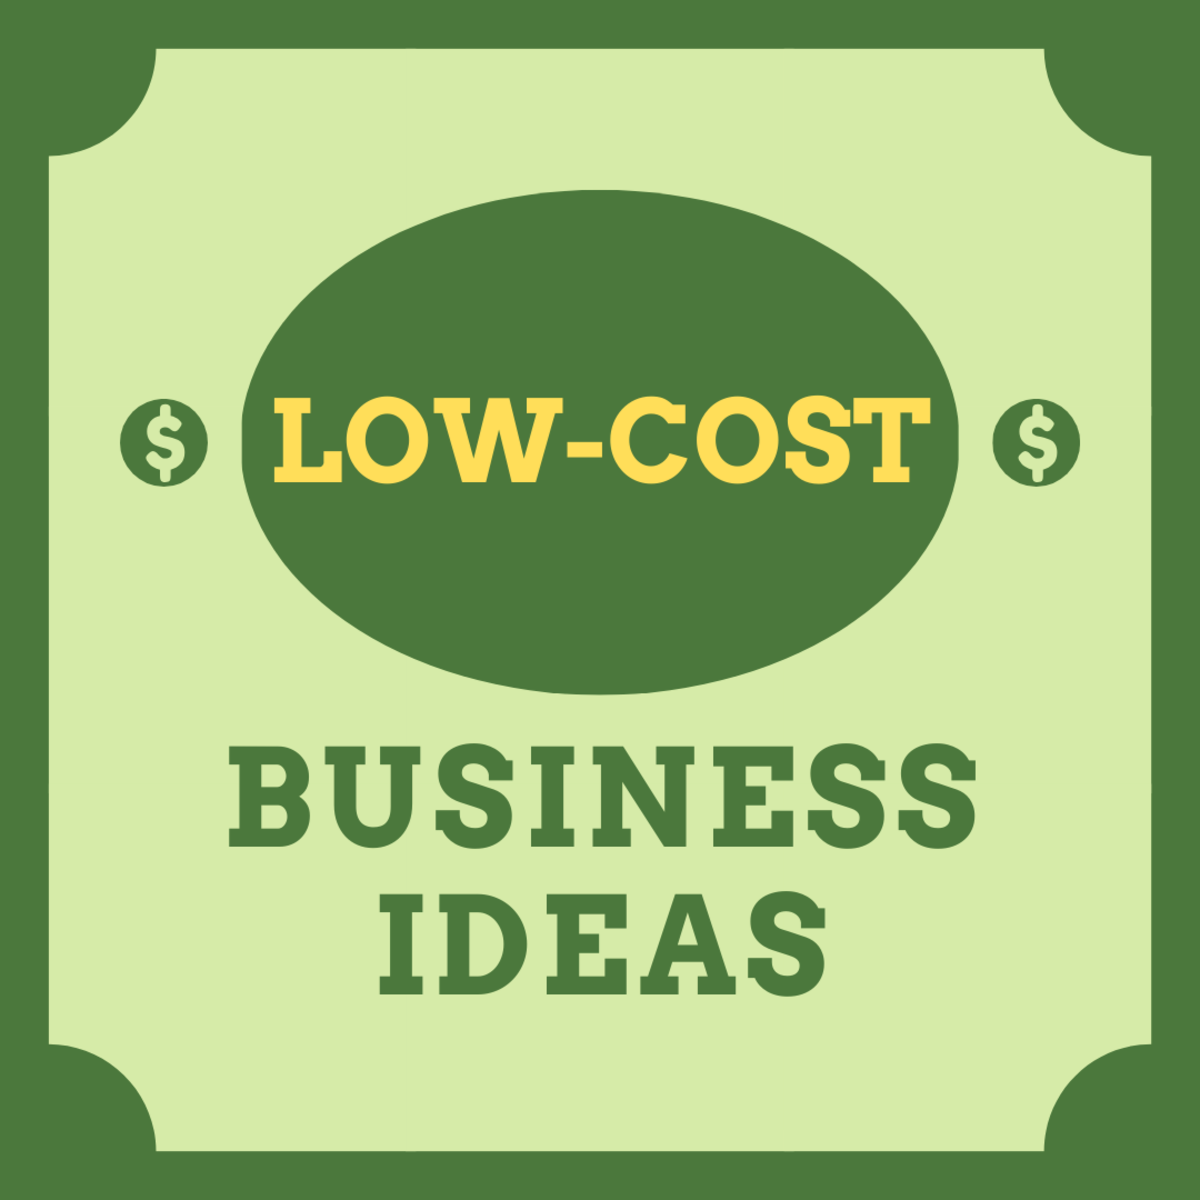 Explore more than 80 low-cost ideas for starting a business.